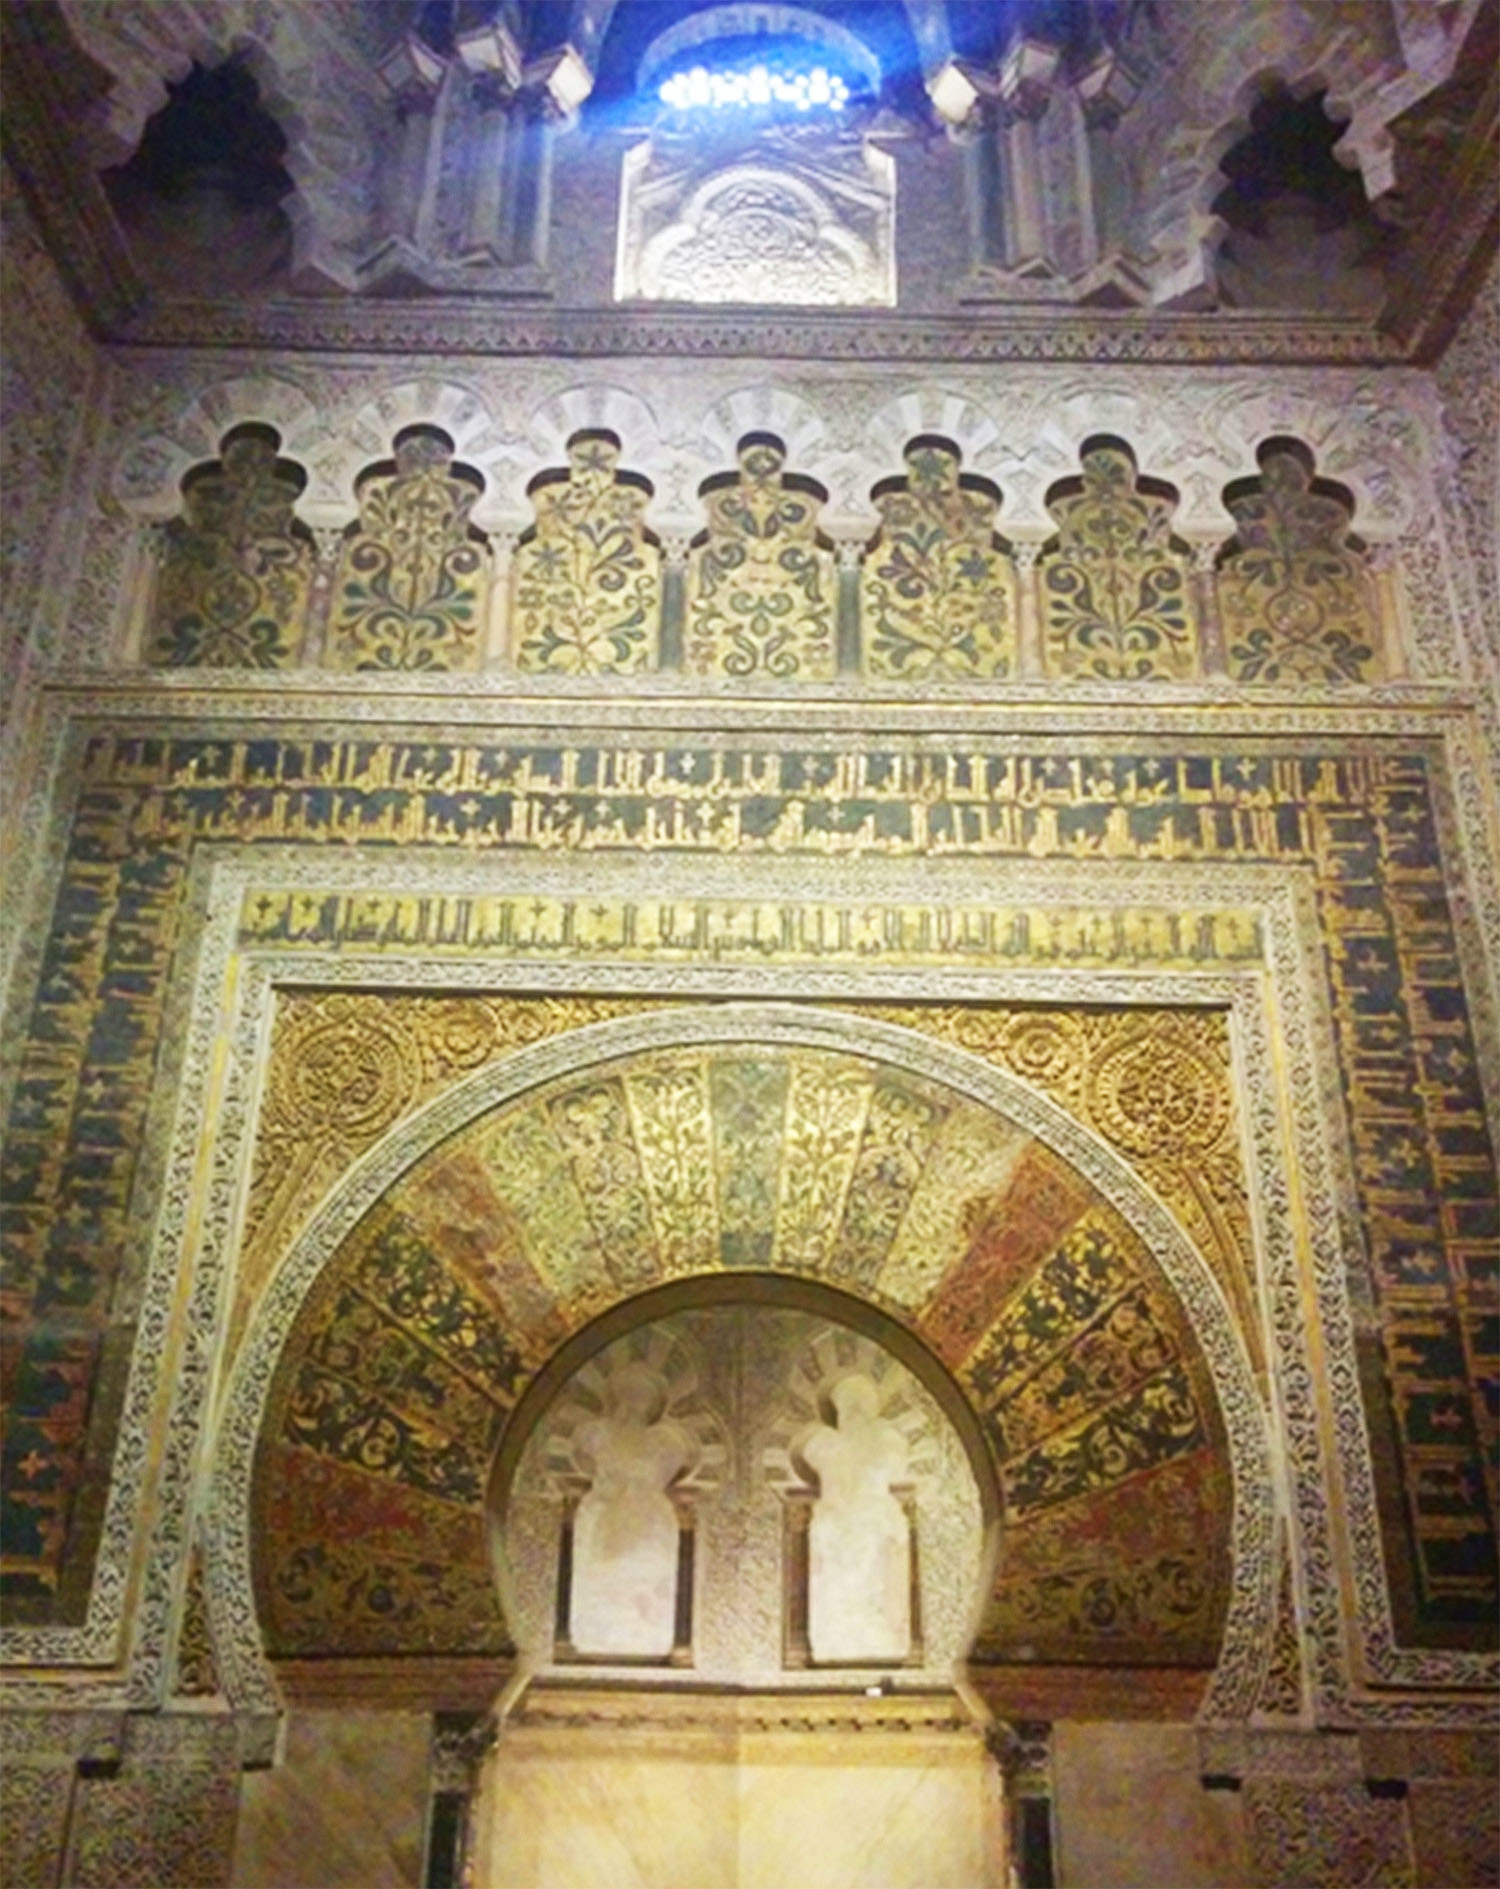 Mehrab of the mosque, a work of Ishq. —Photo by author